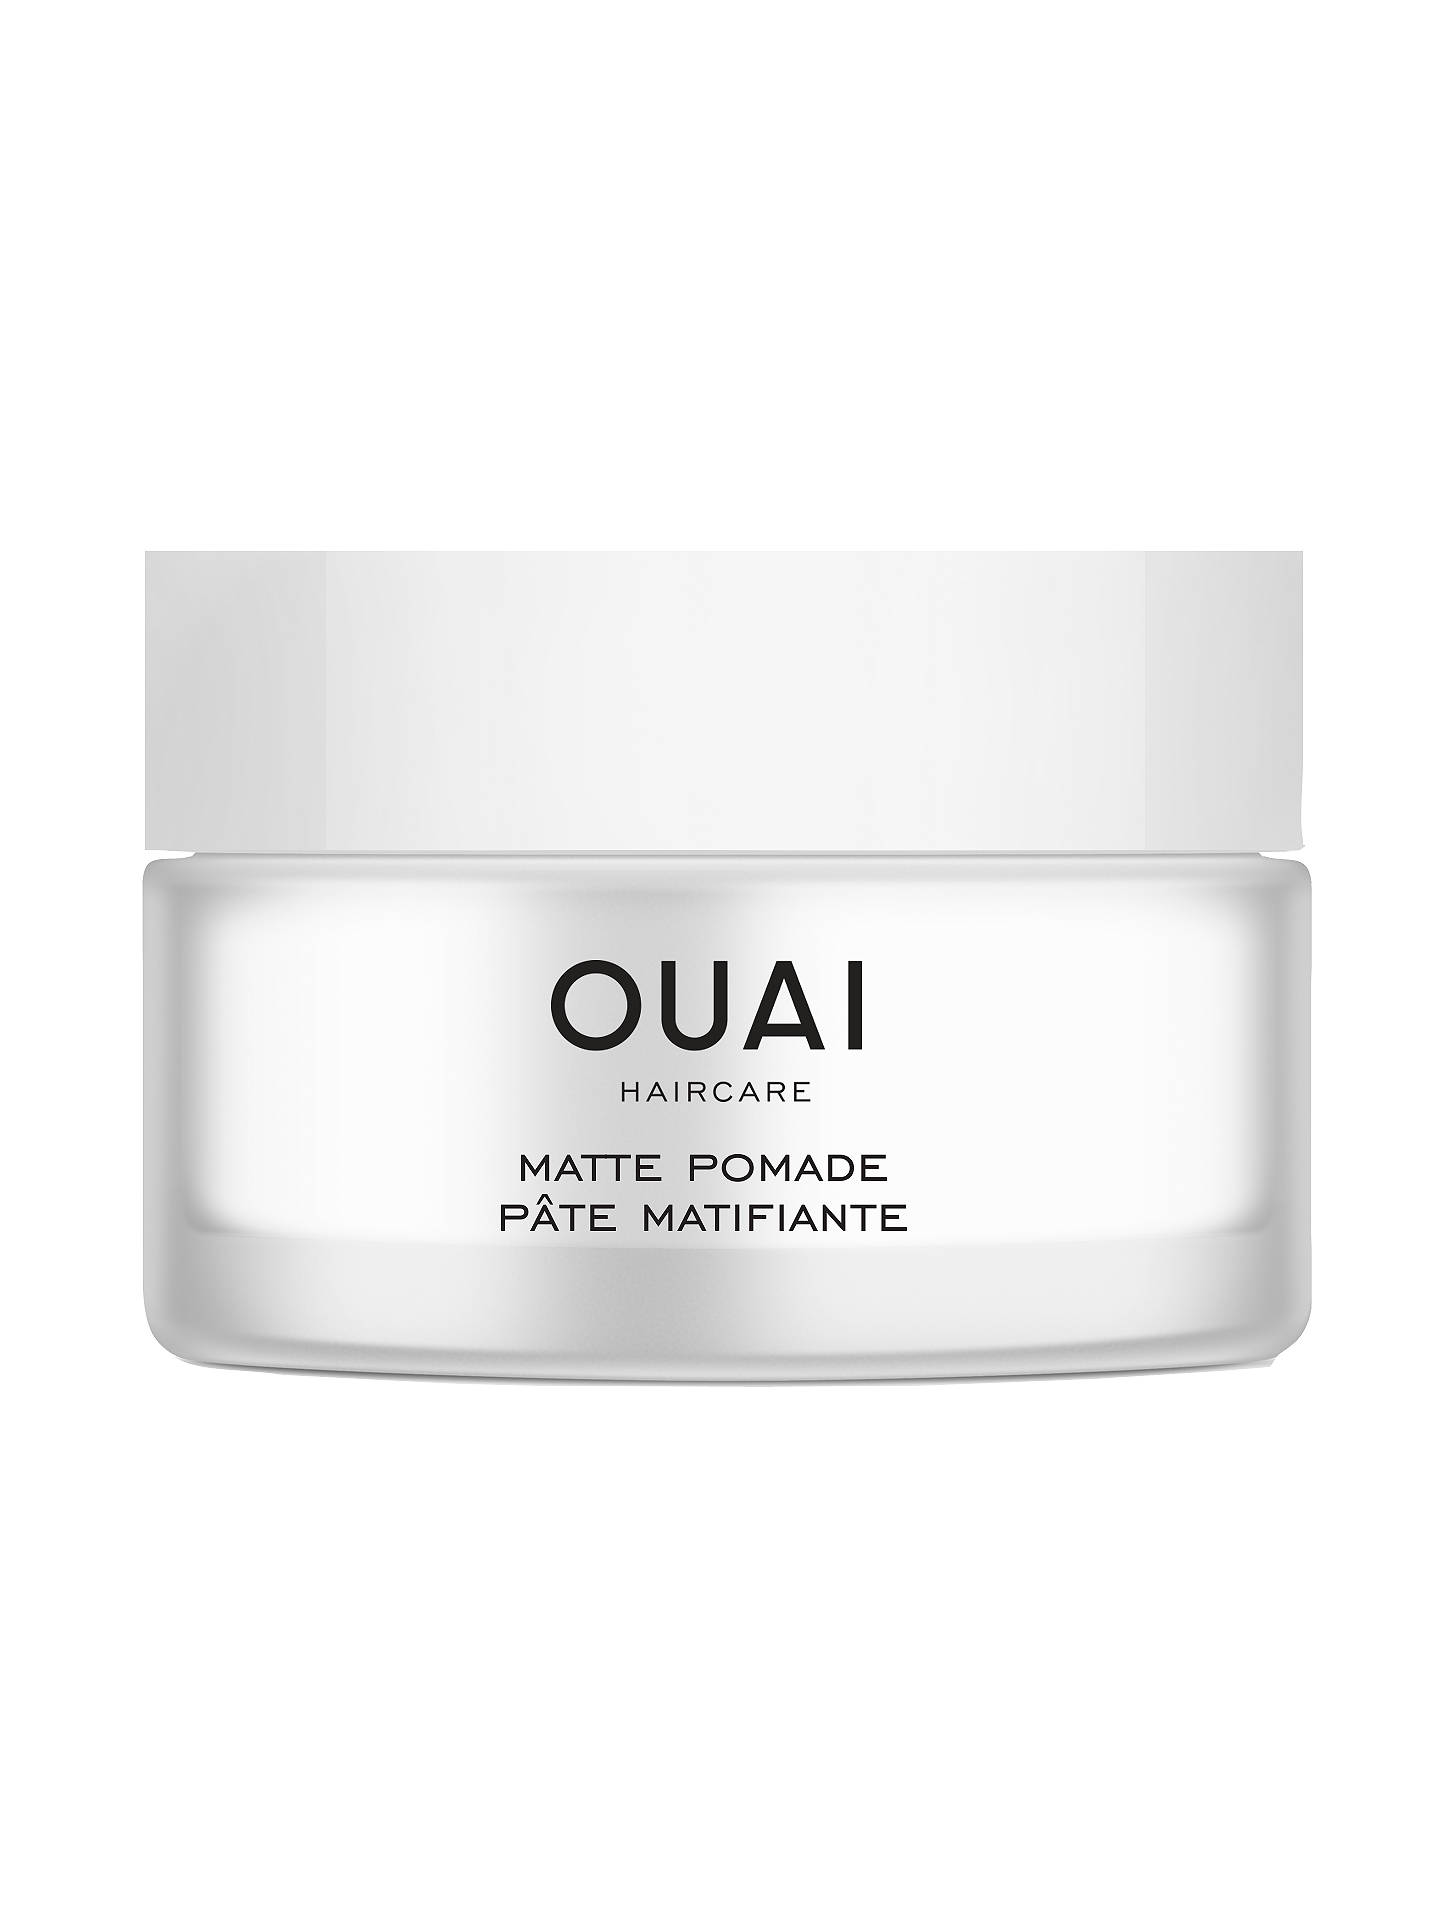 BuyOUAI Matte Pomade, 50ml Online at johnlewis.com